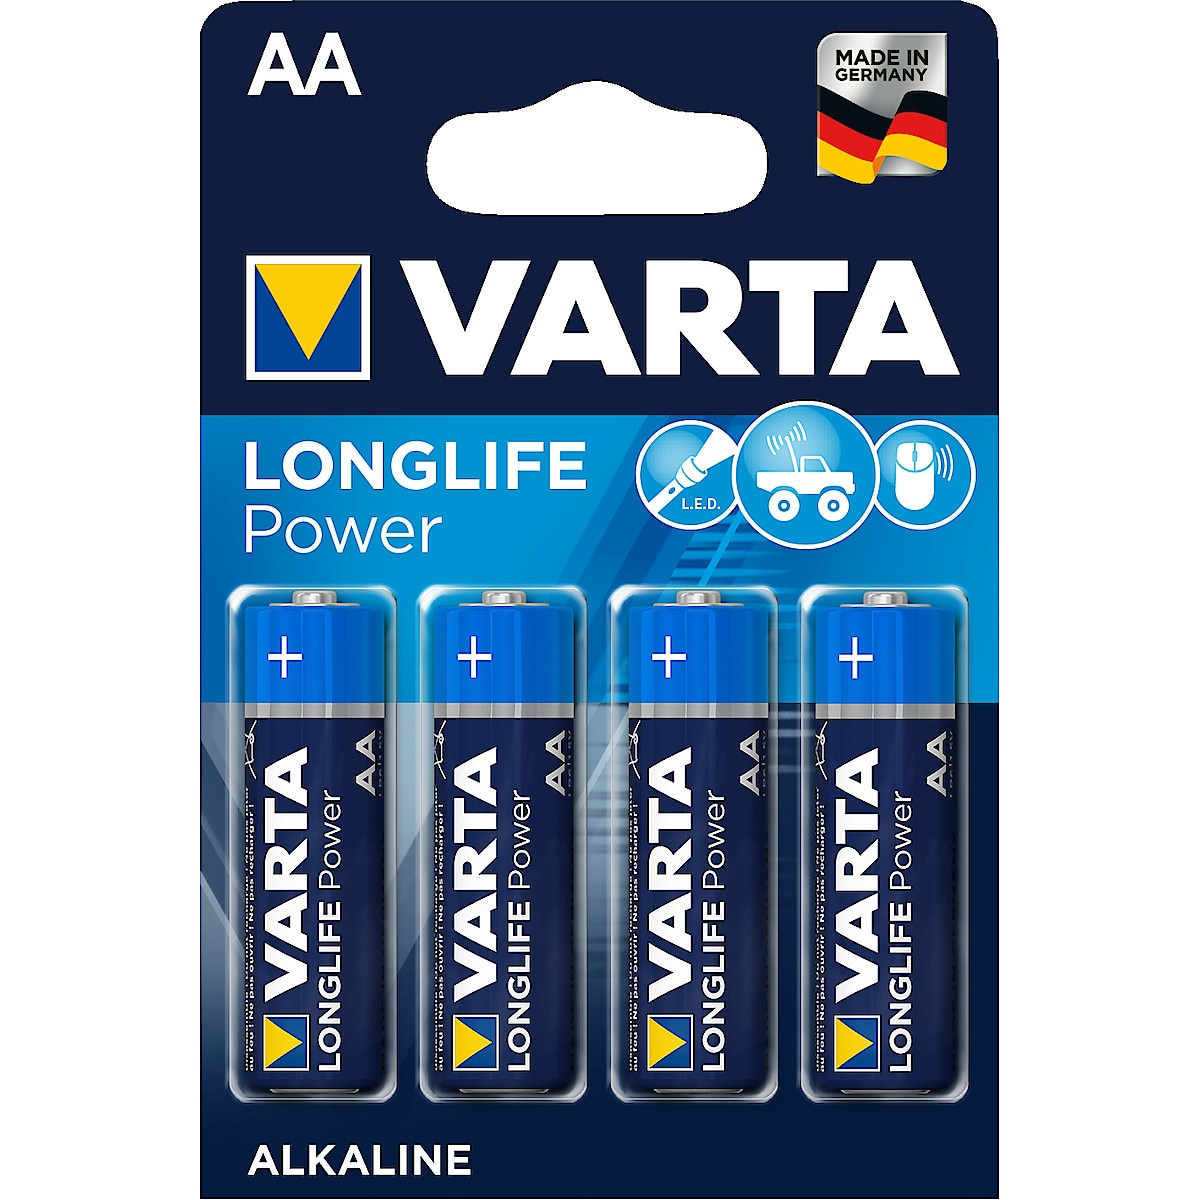 VARTA Longlife Power alkalisk batteri AA/LR6